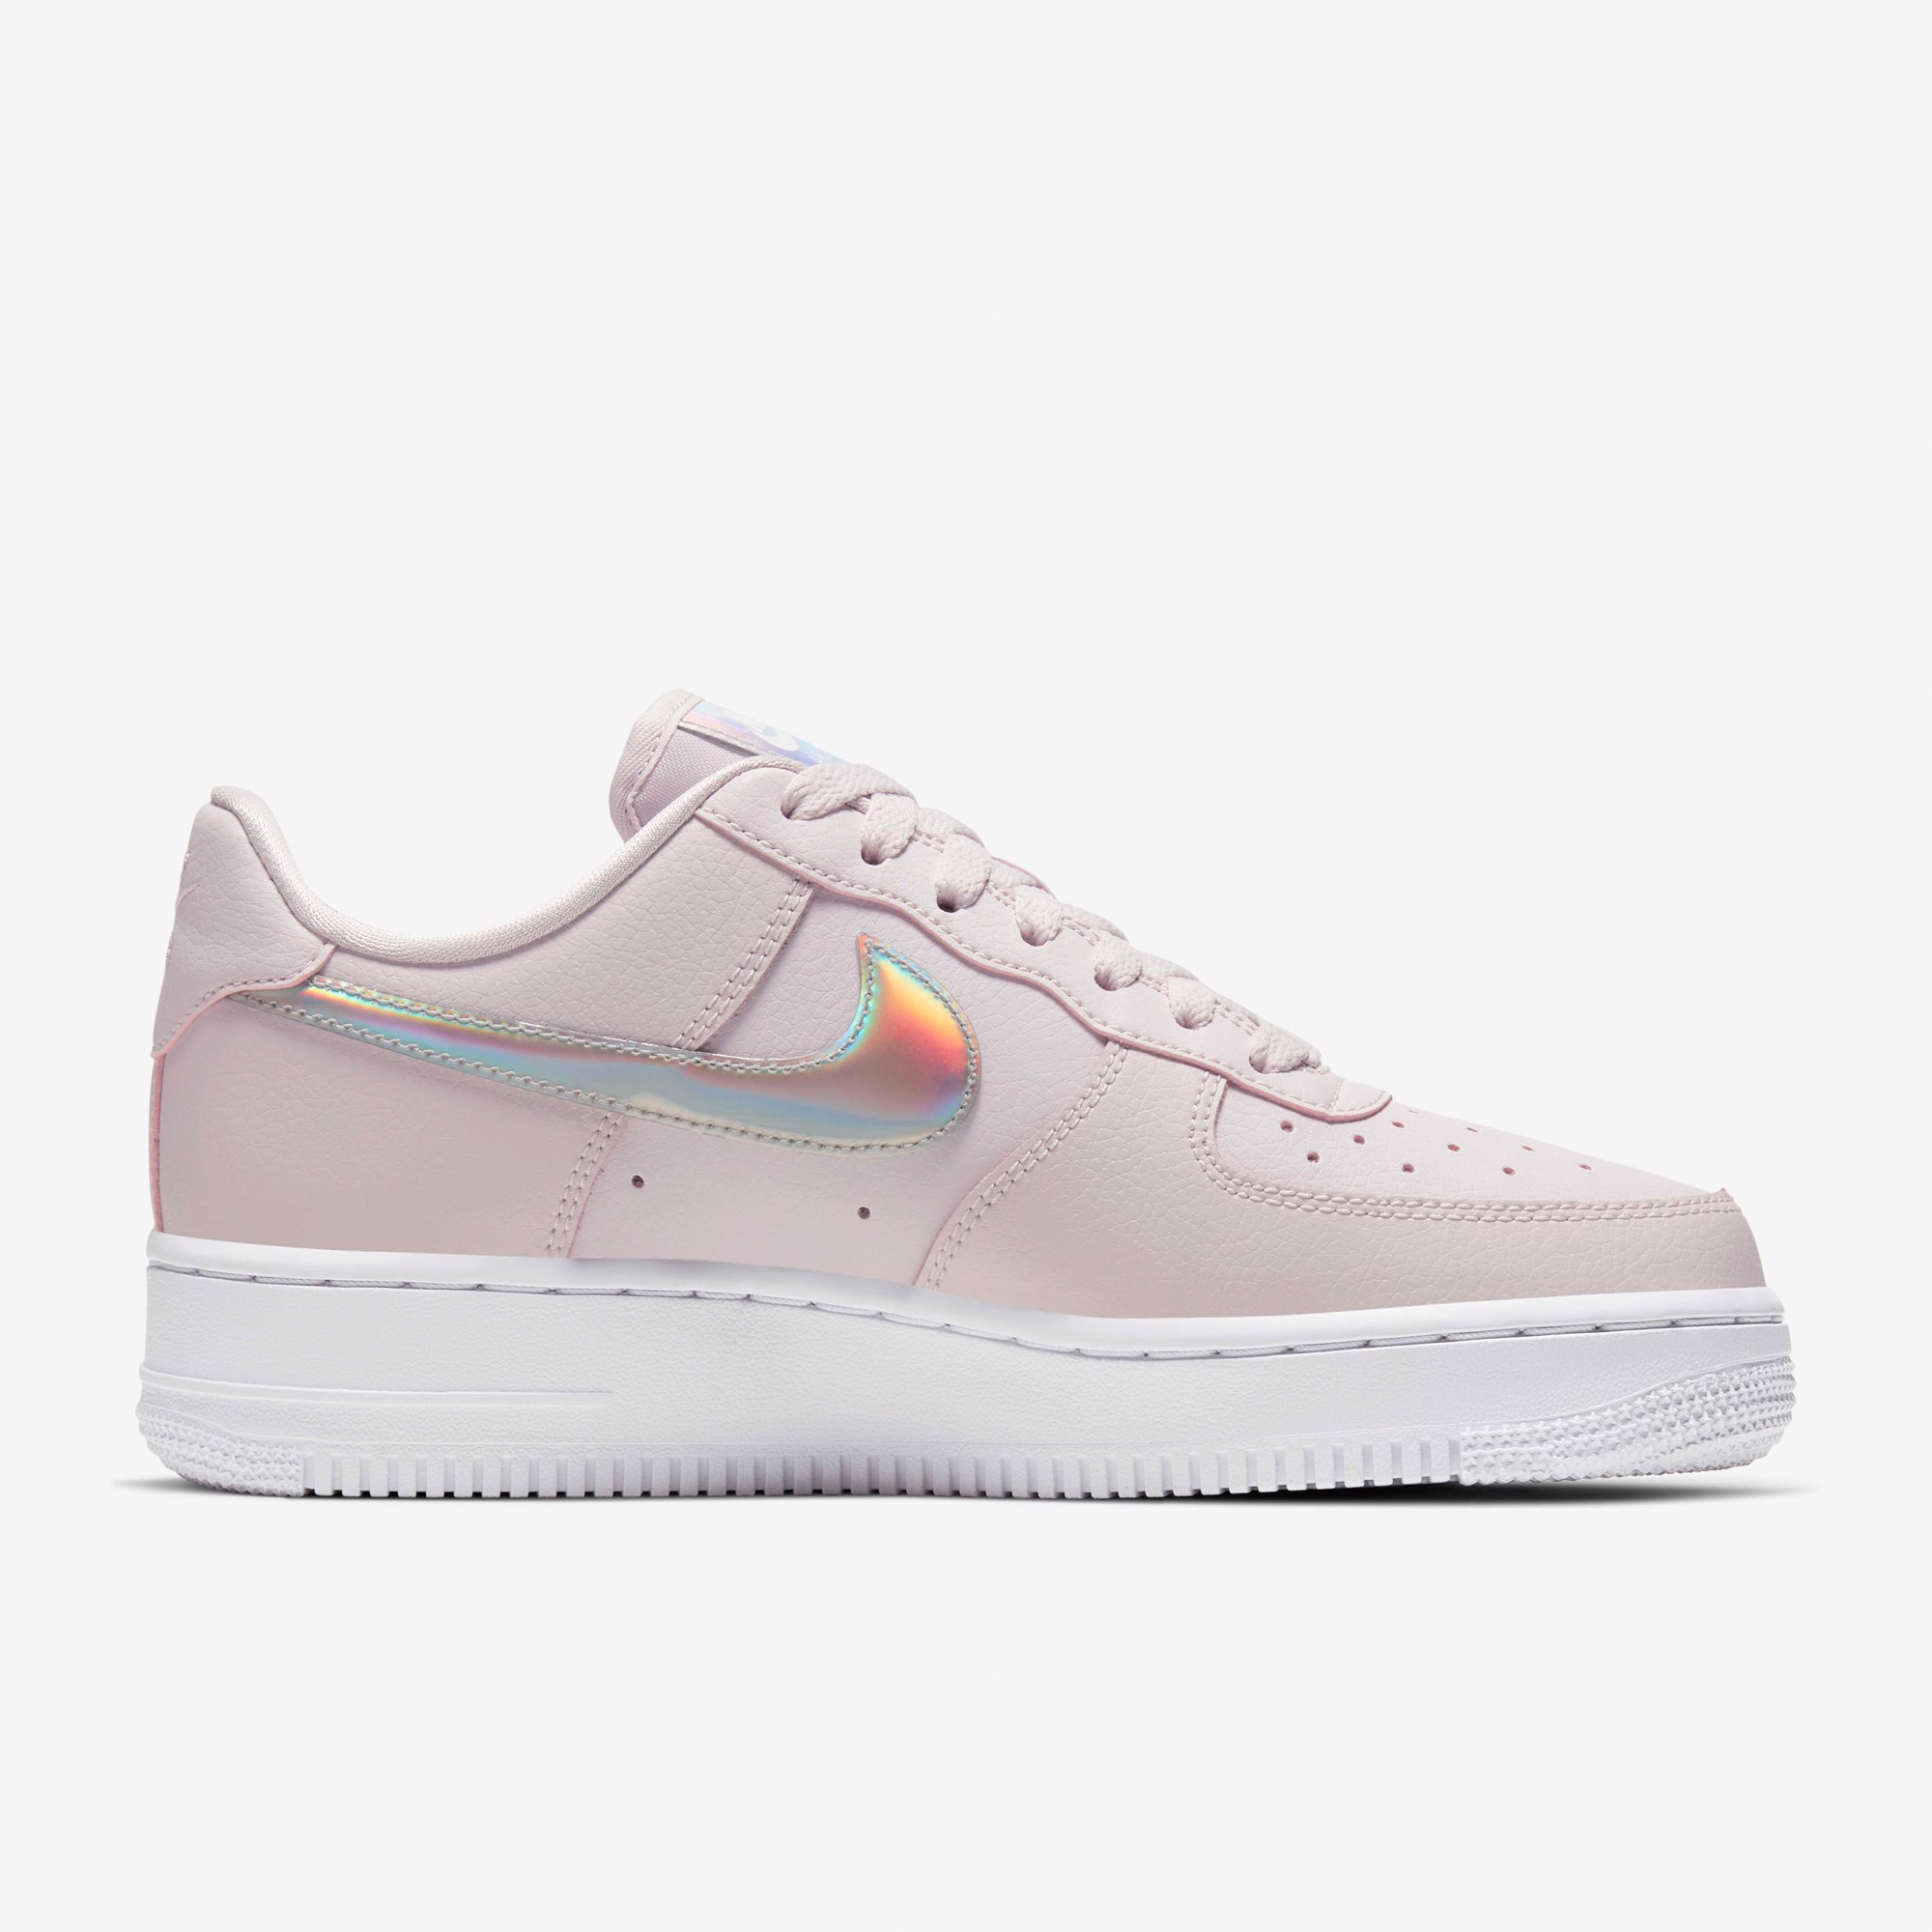 Nike Air Force 1 '07 Essential - Barely Rose